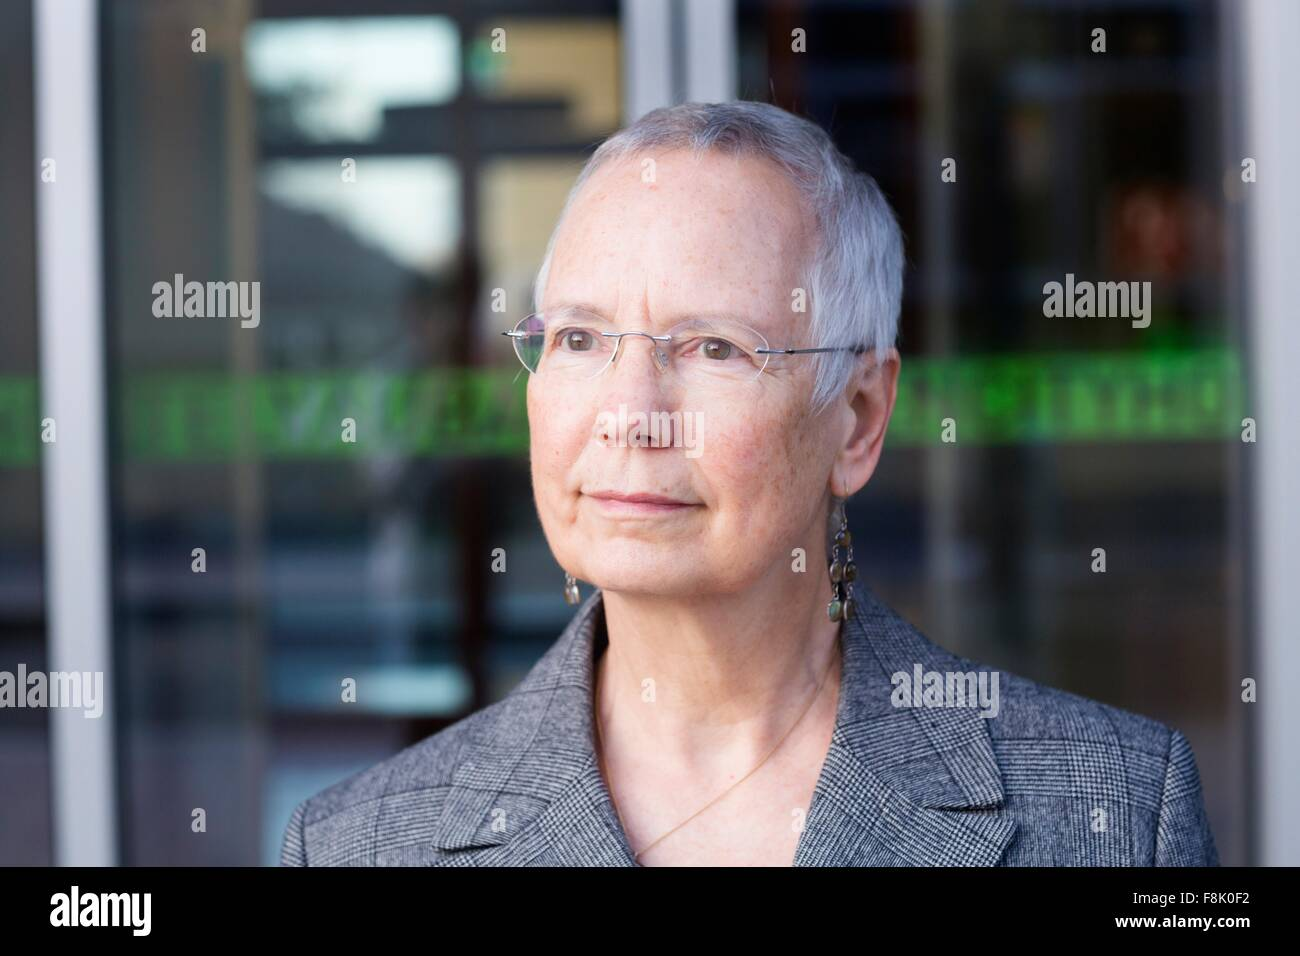 Portrait of senior businesswoman with short grey hair outside hotel entrance - Stock Image